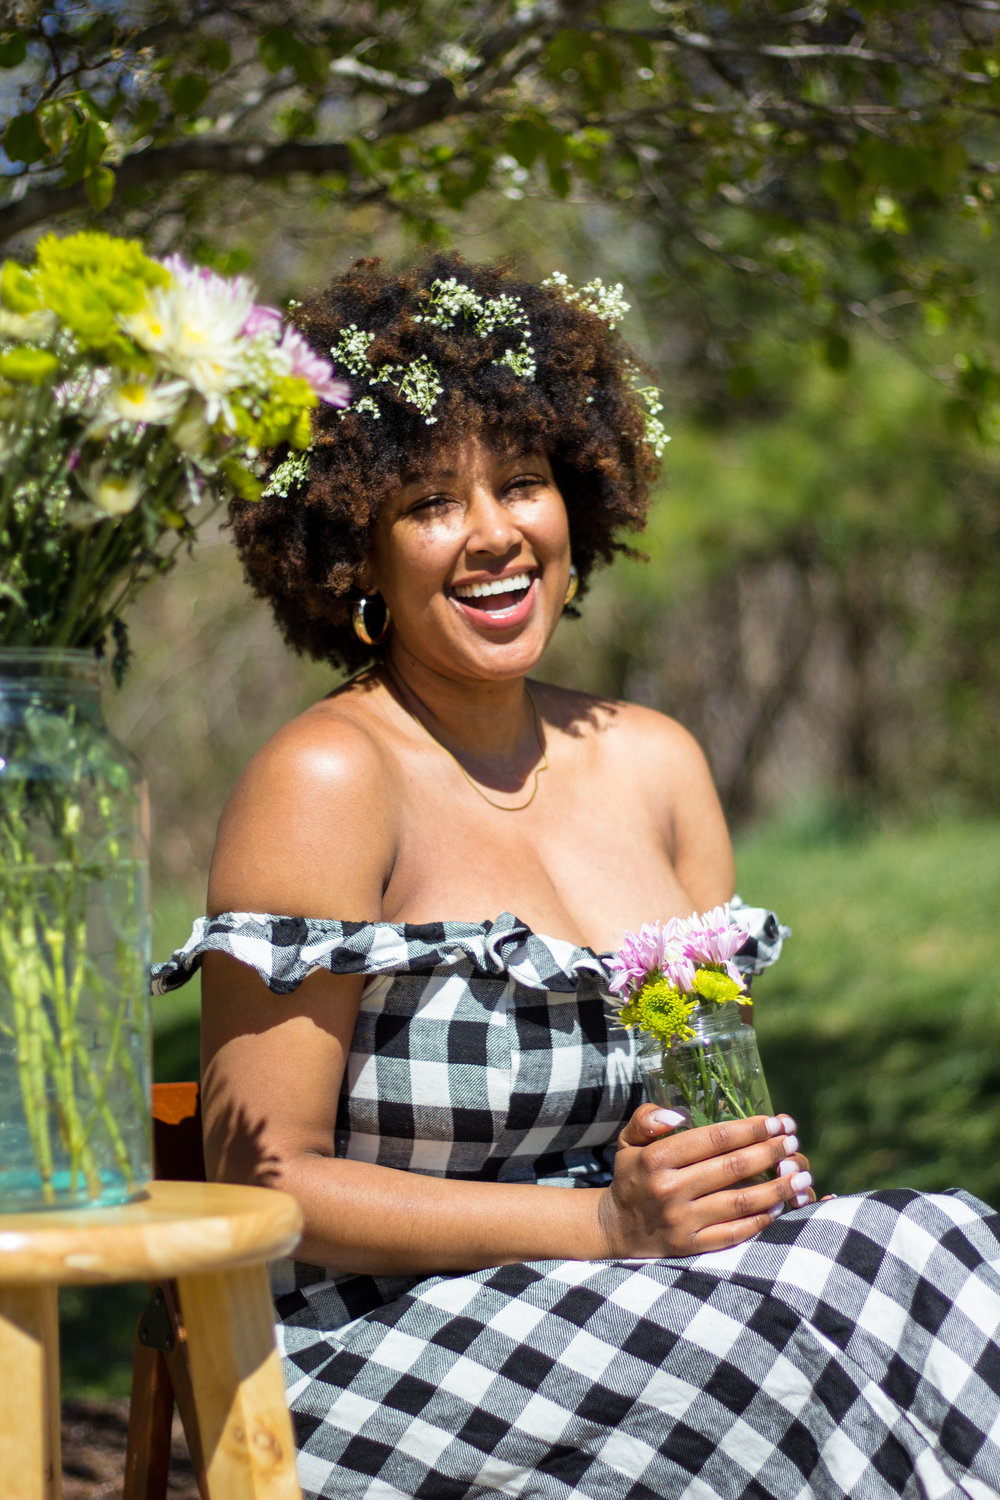 SIMONE COPE - Simone is a lawyer and natural hair enthusiast. She is also a co-founder of Black Brew Movement, a platform that seeks to diversify the craft beer industry.(IG: @nappysim)